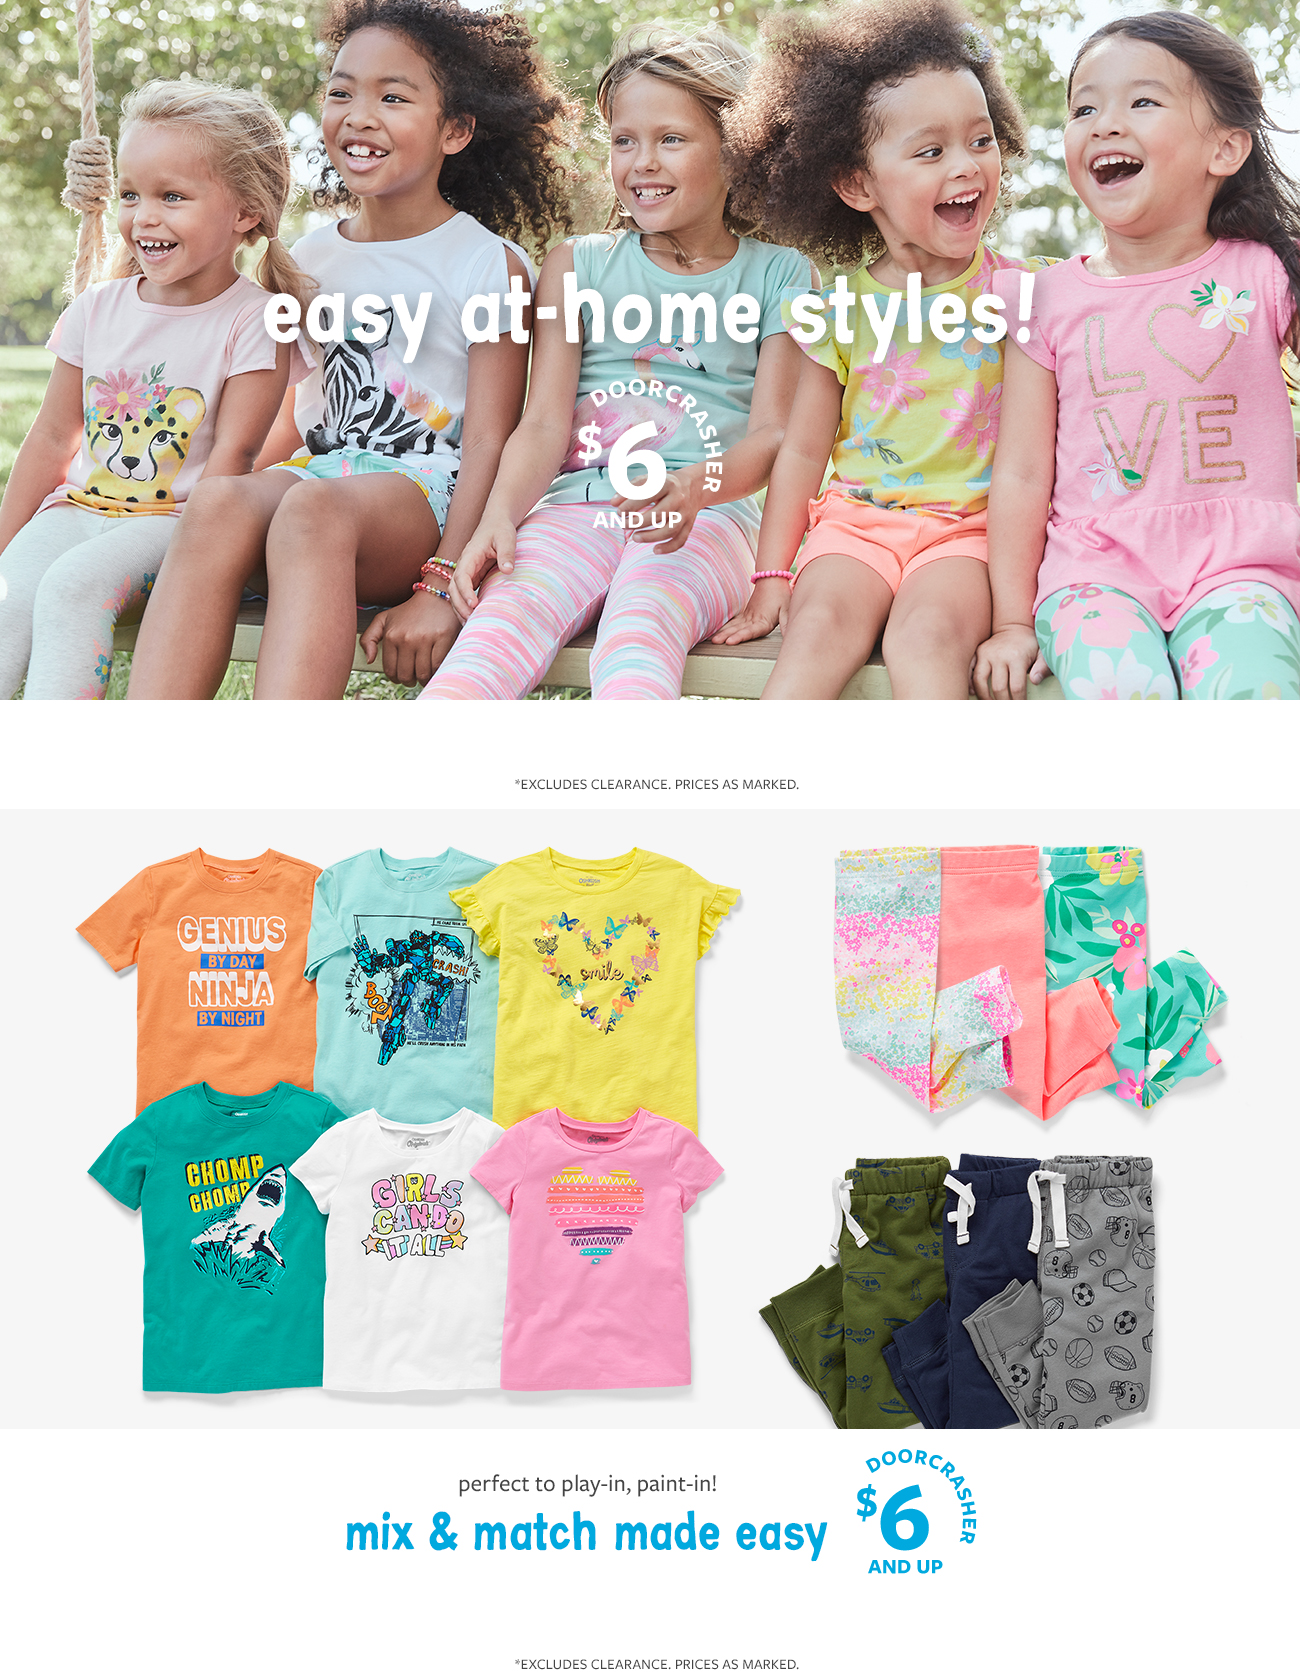 easy at-home styles!